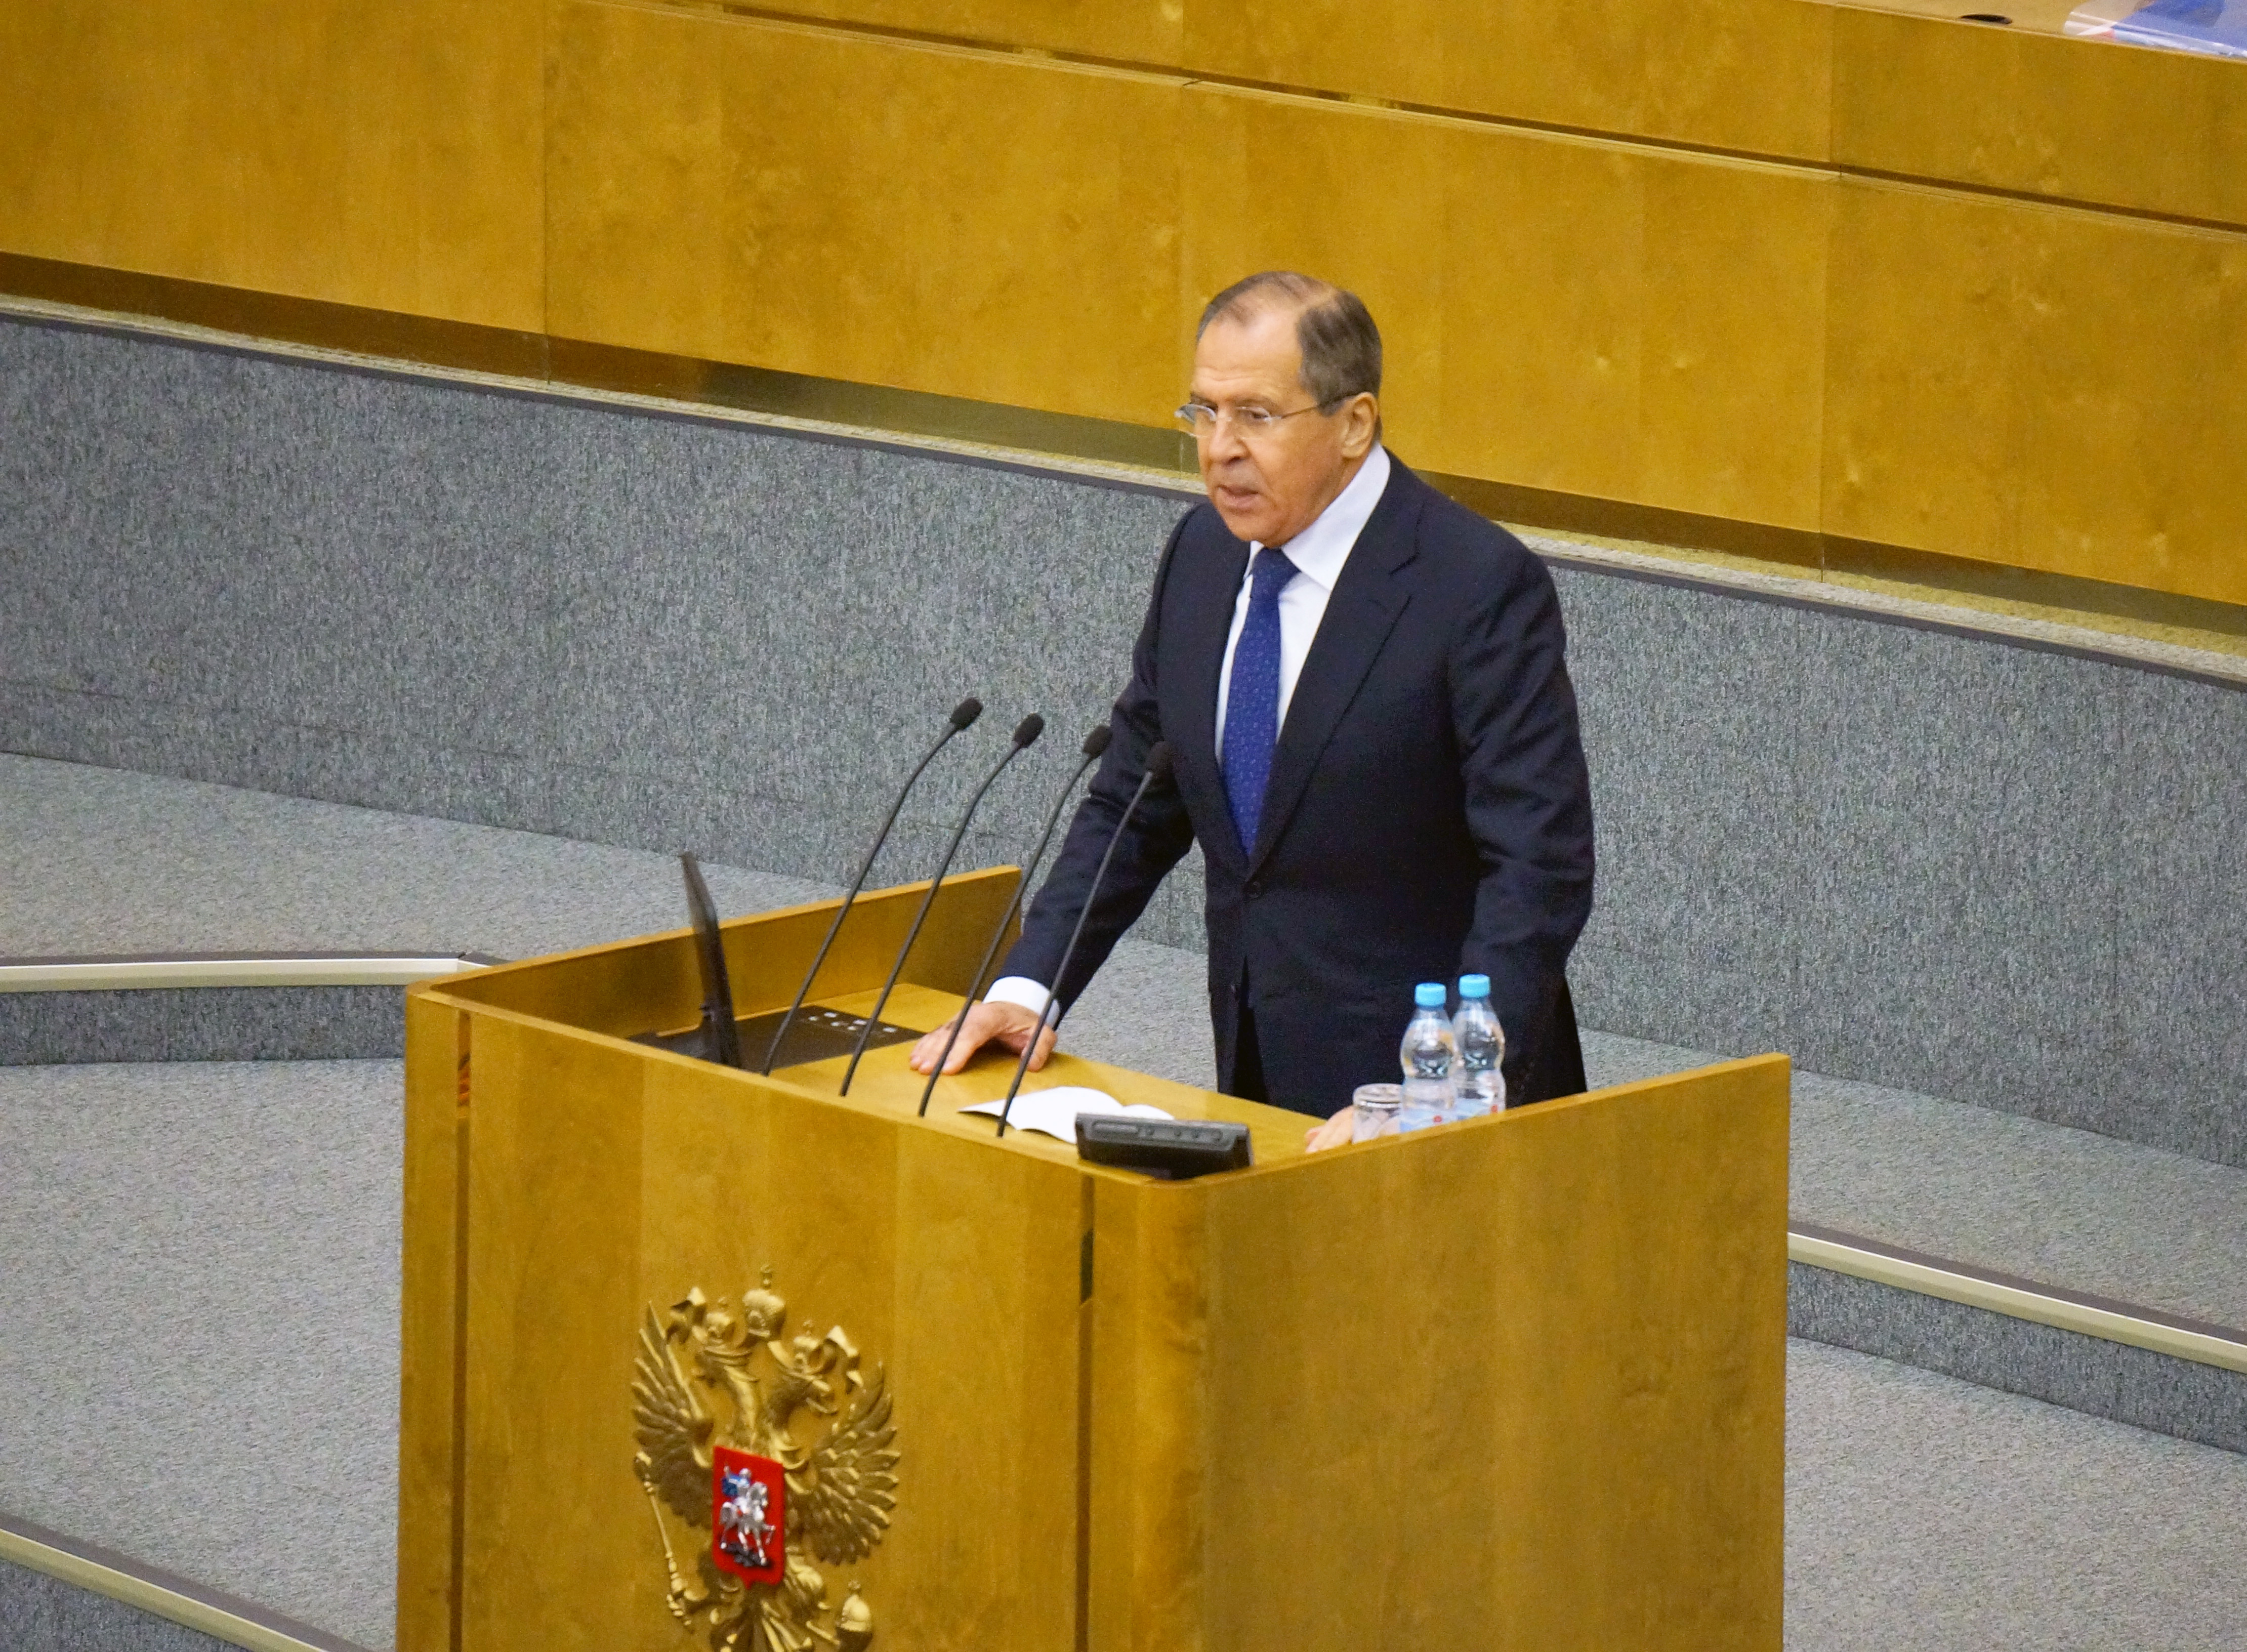 Foreign Minister Sergey Lavrov's remarks and answers to media questions during Government Hour at the State Duma of the Federal Assembly of the Russian Federation